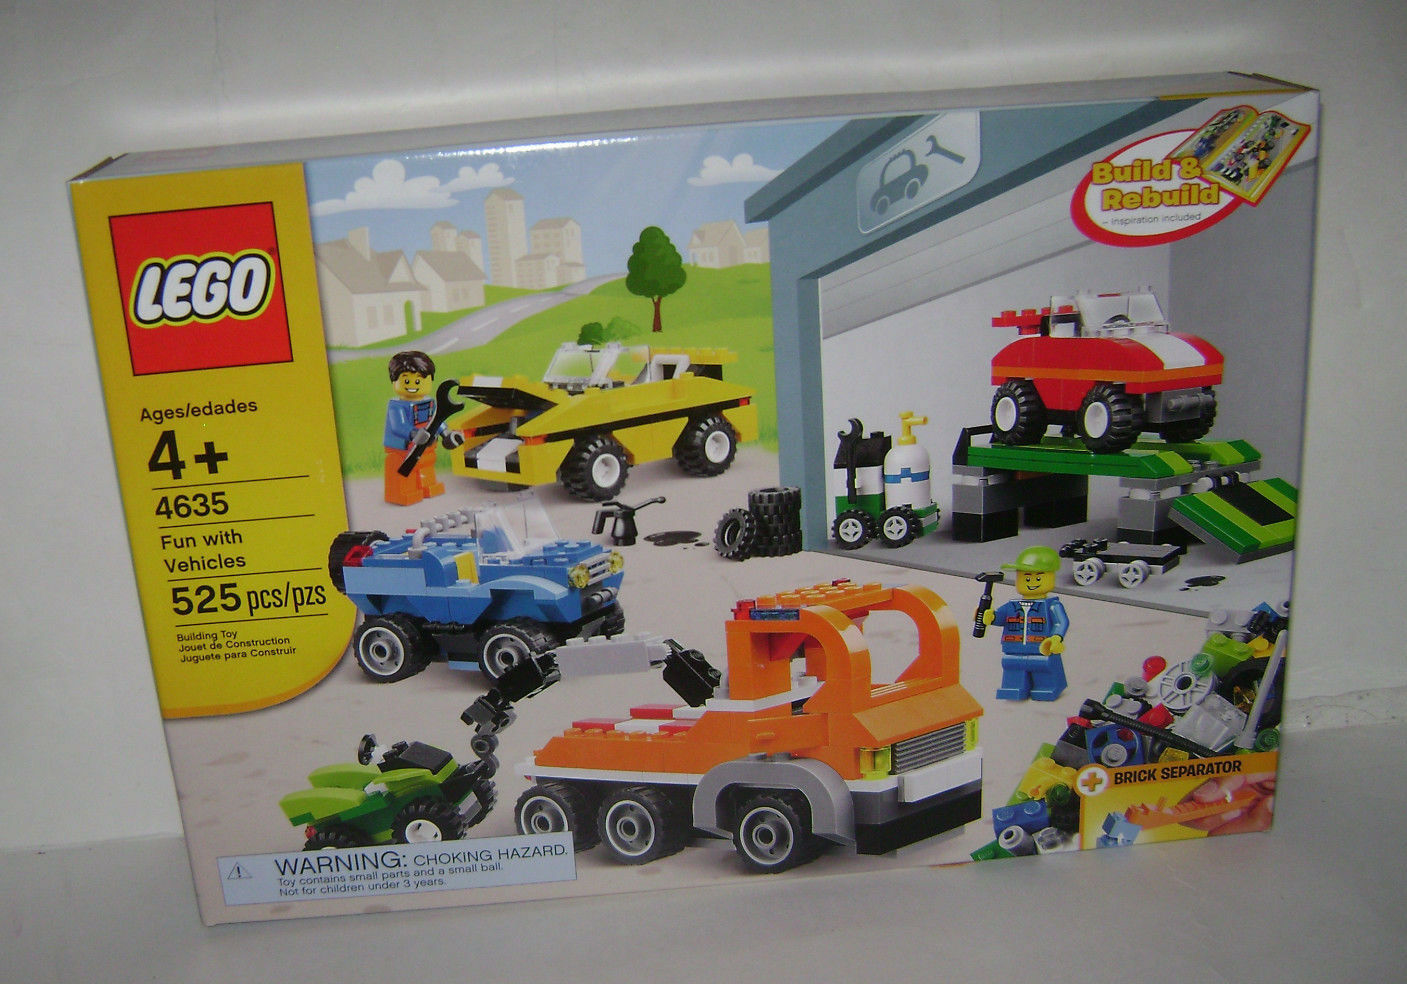 NEW 4635 Lego CREATOR Fun with Vehicles Building Toy SEALED BOX RETIrosso A